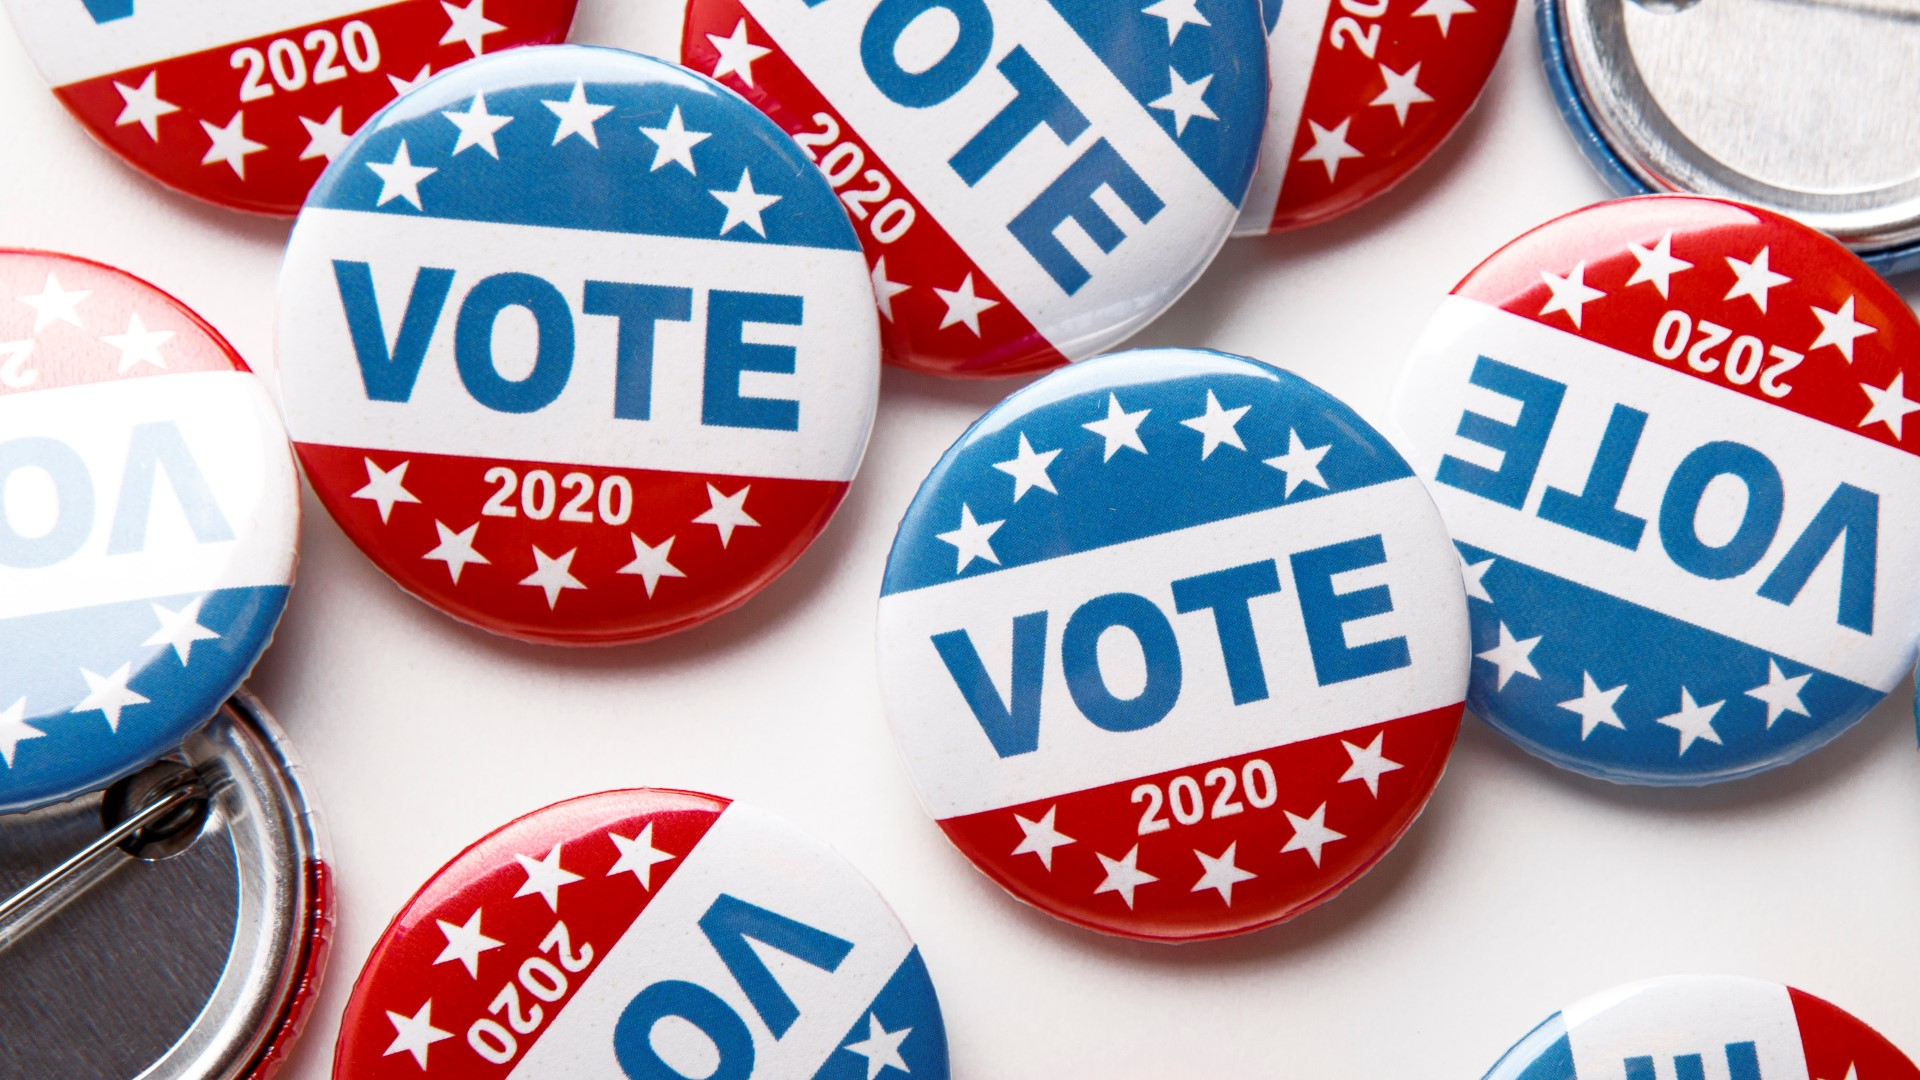 Election day. United States of America president voting 2020. Election voting buttons on white background, panorama